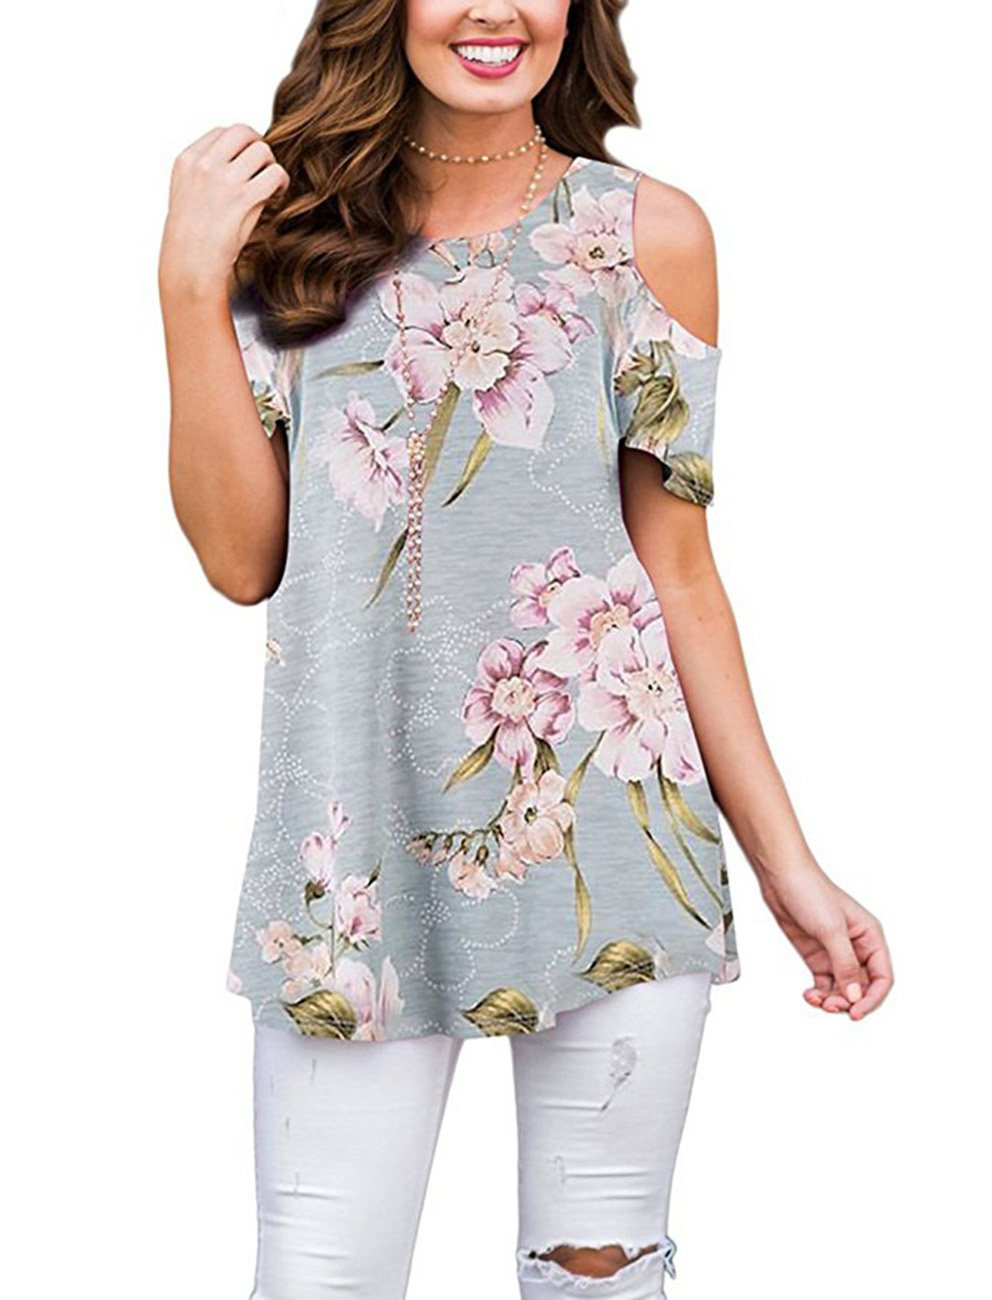 7f1e753227370 Women floral printed loose fit long flowy tunic tops and blouses,95%  Polyester/5% Spandex,Soft,Lightweighted and Comfortable Unique flattering  tee shirt ...